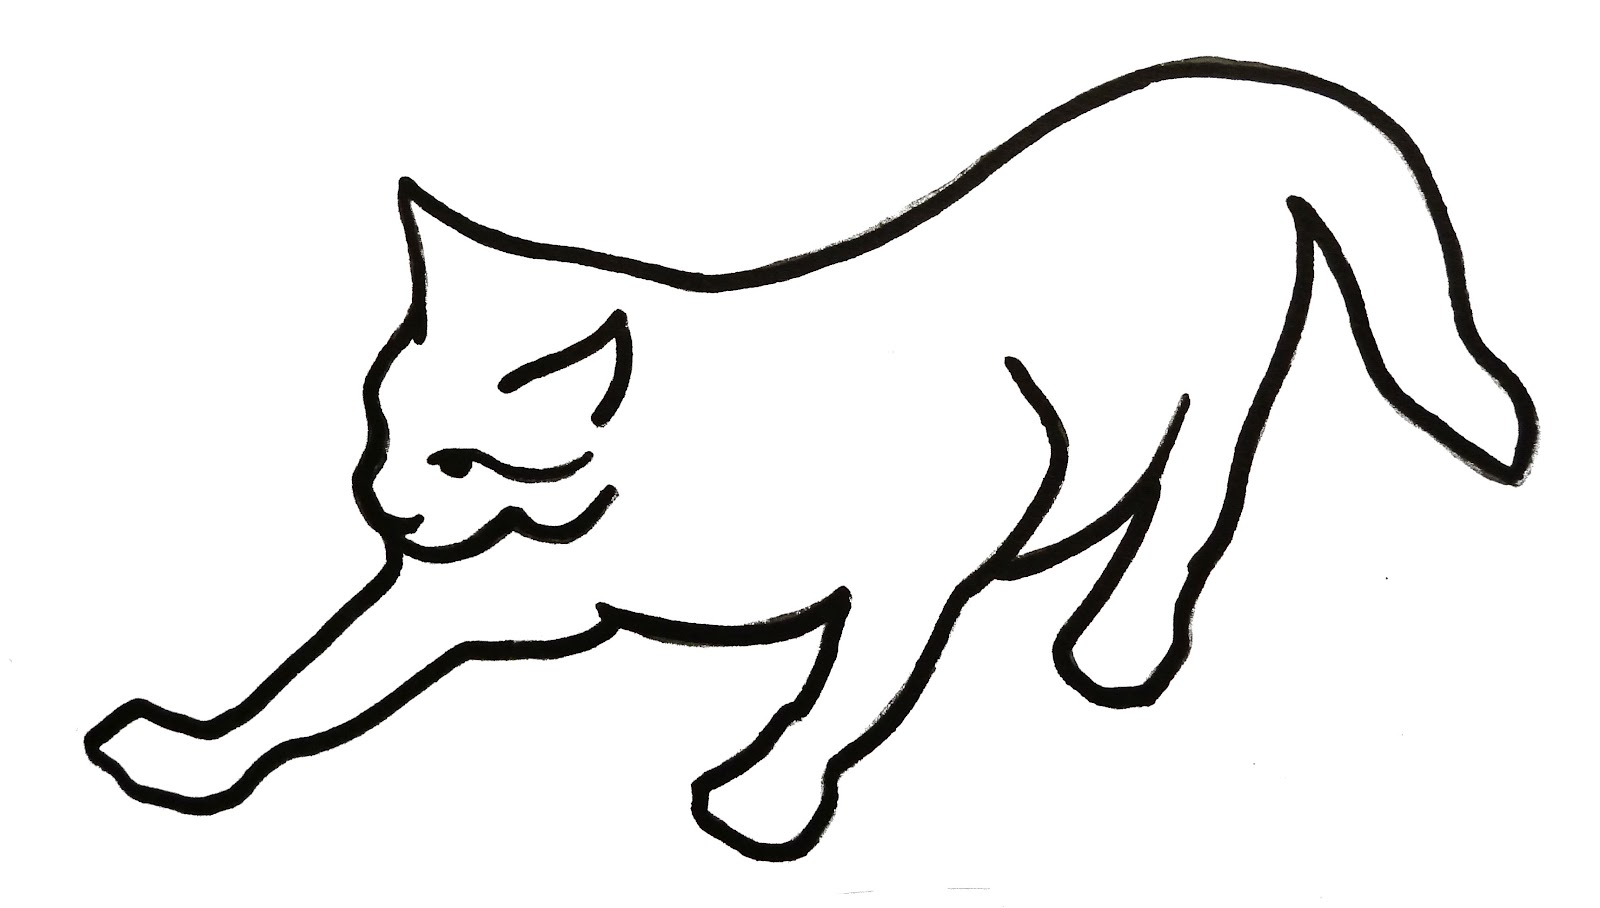 Line Drawing Of A Cat Face : Cat line drawing clipart best